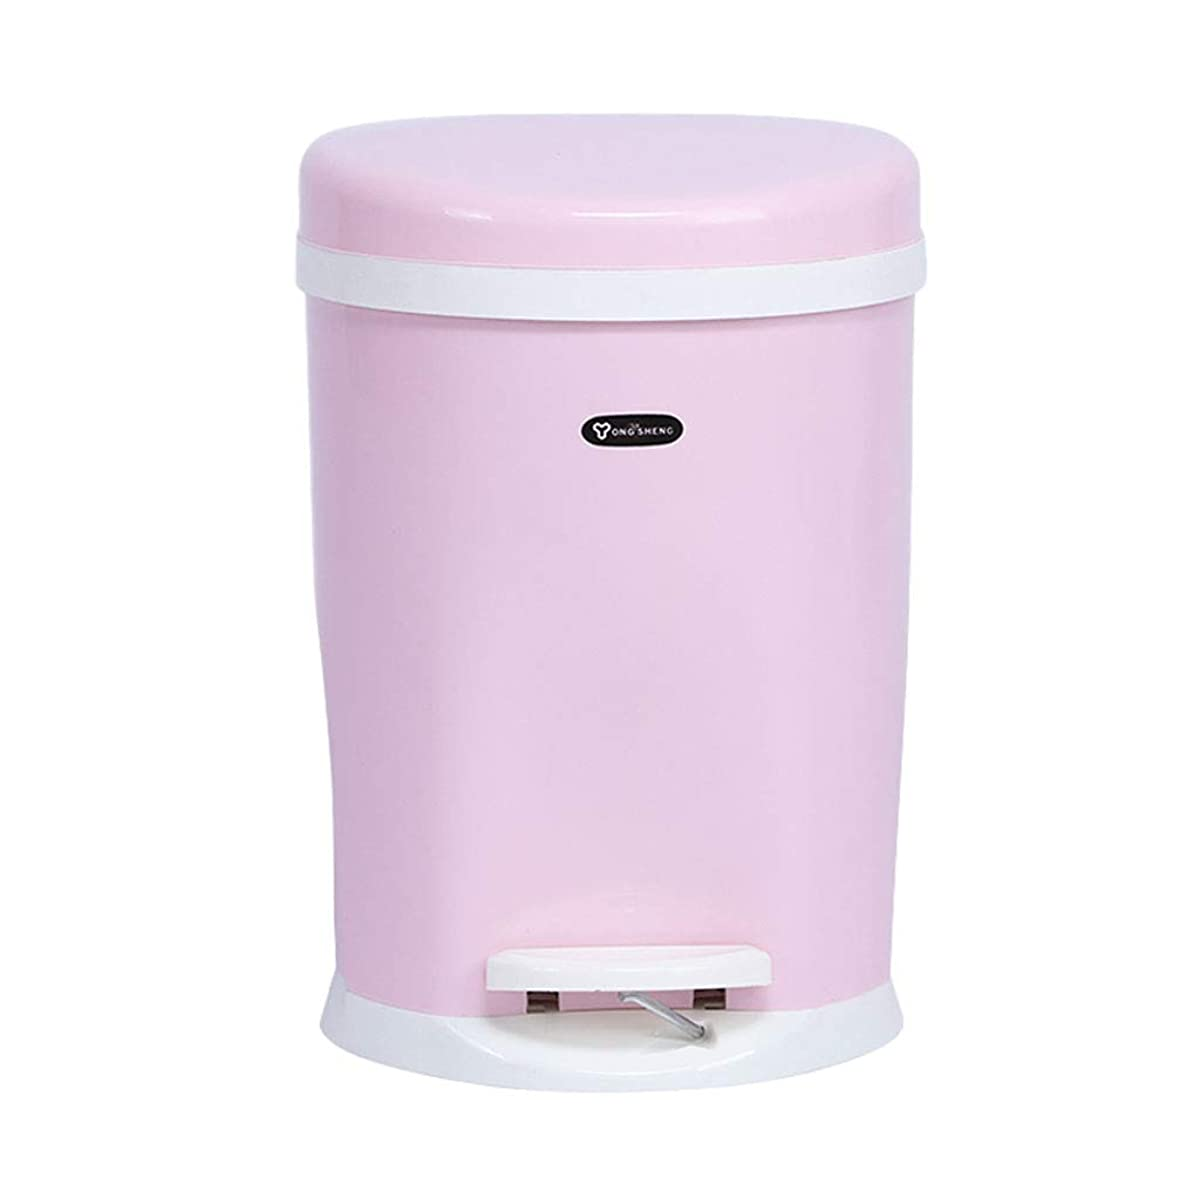 Bai Su Foot Trash-Household Plastic with Lid Fashion Storage Barrel Living Room Waste Recycling (Color : Pink, Size : 8.5L)